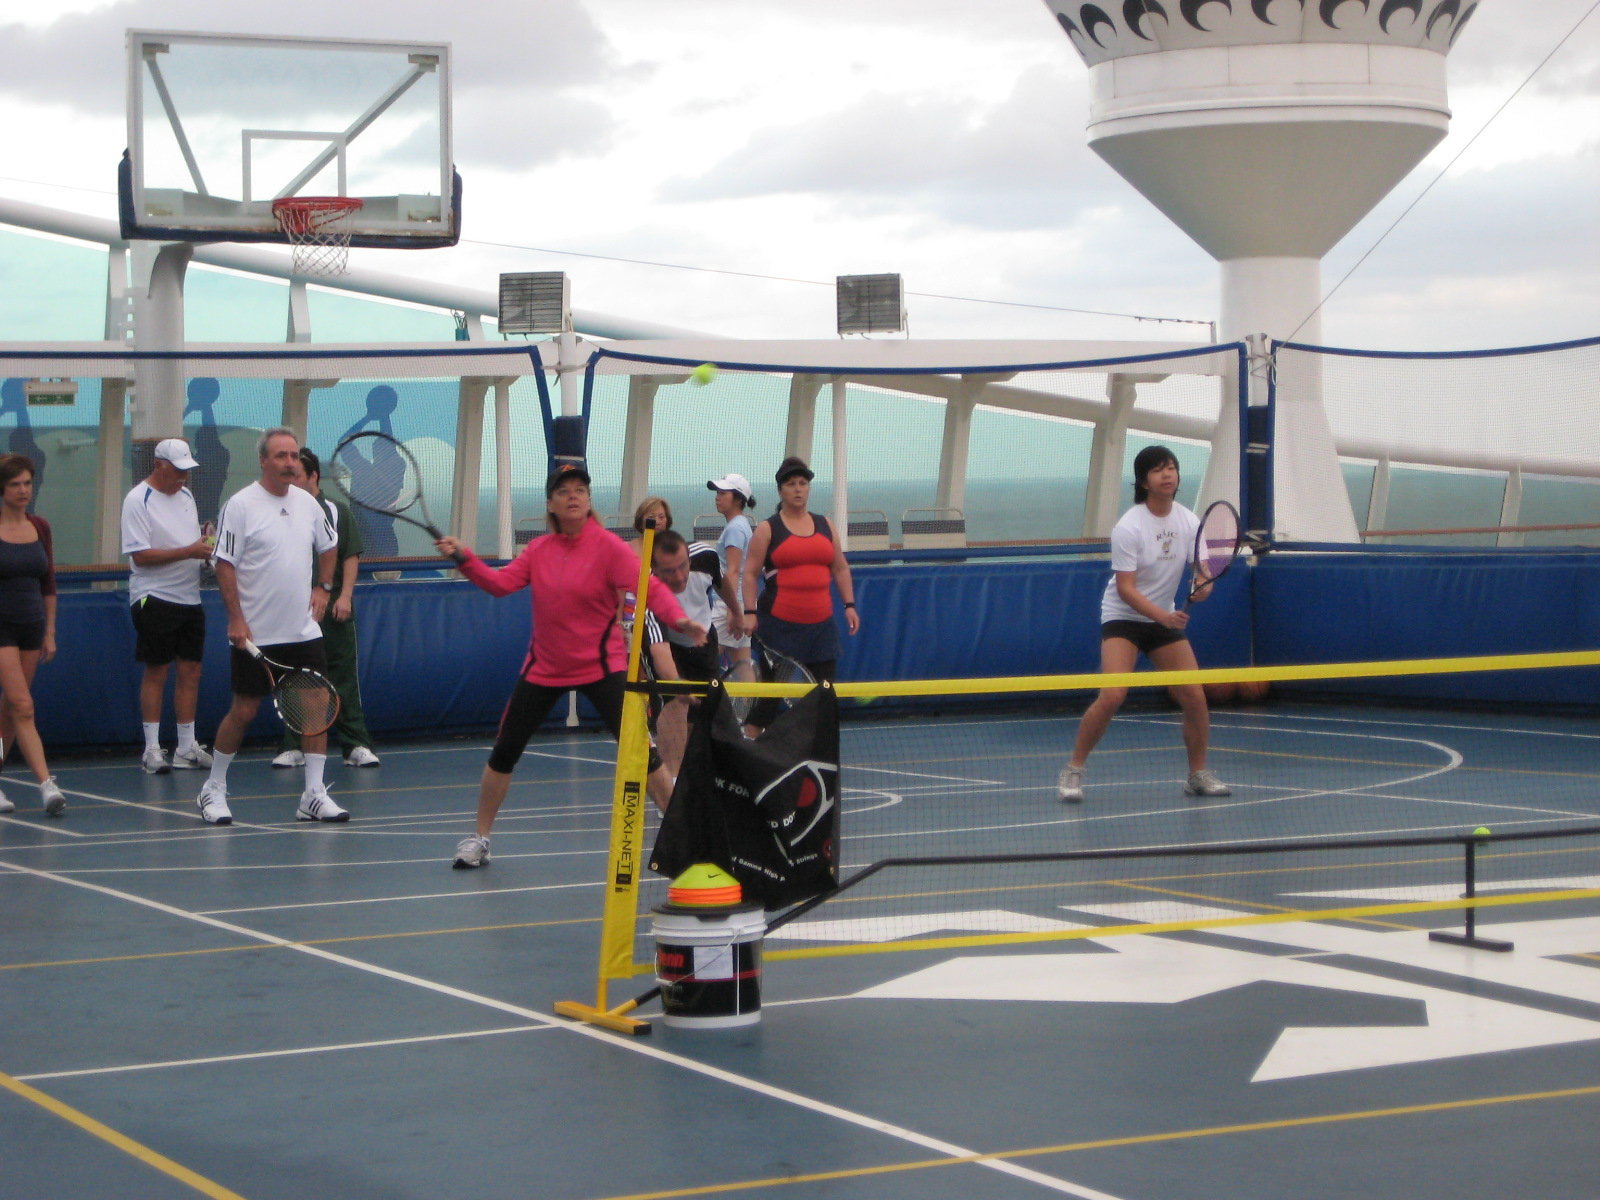 tennis on ship